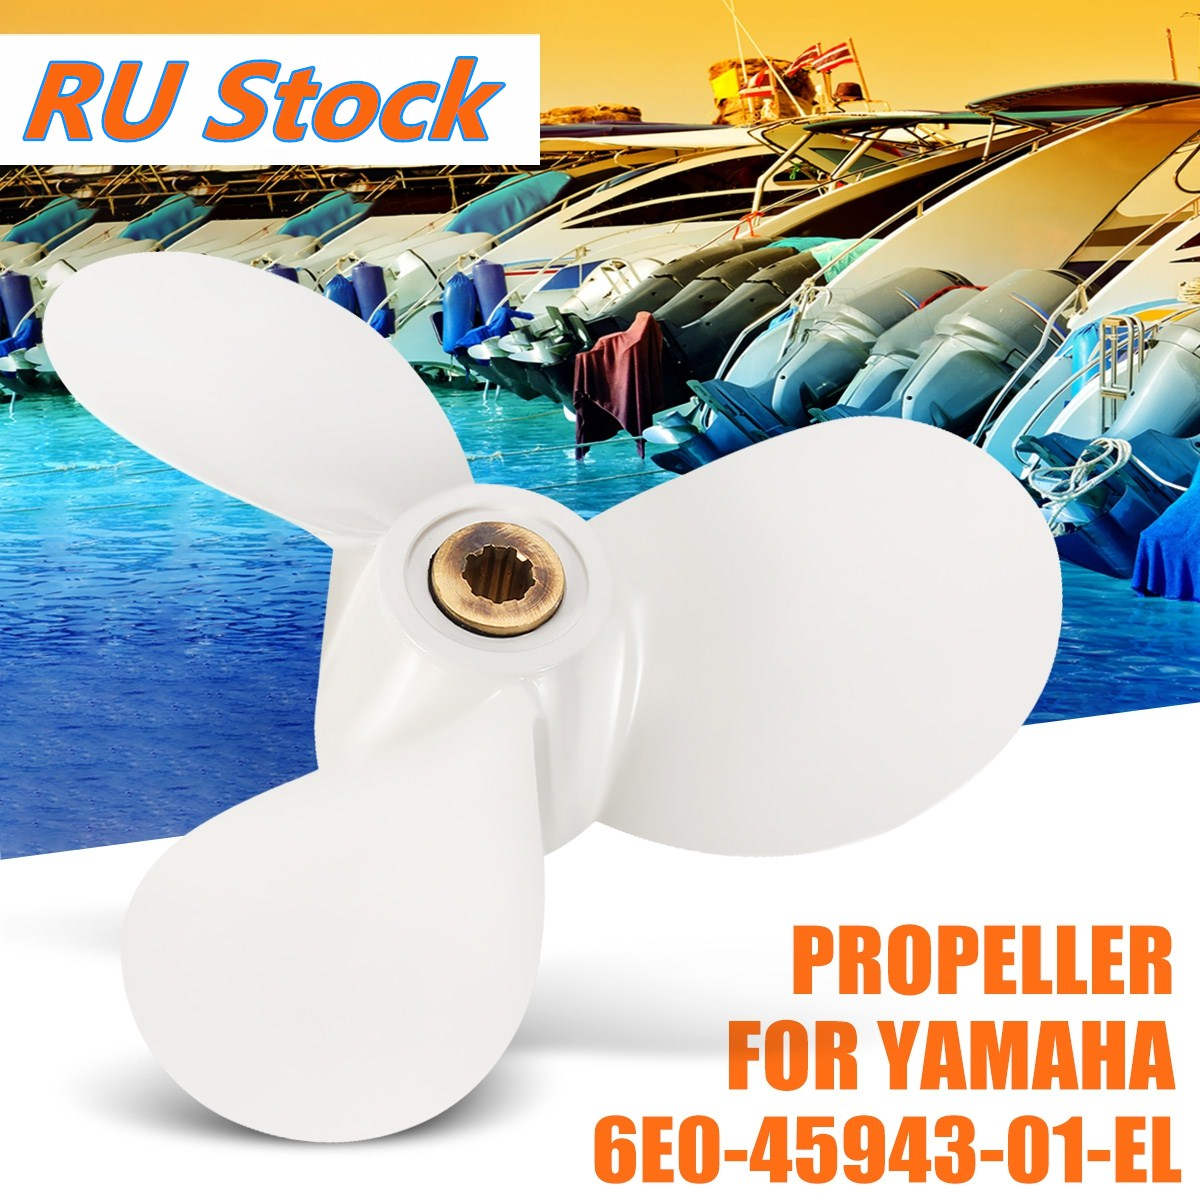 Boat Parts & Accessories 1pcs Boat Motors Marine Propellers For Yamaha Outboard 4hp 5hp 6hp Engine 71/2x 7-ba #6e0-45943-01-el Radius 9.5 Cm White Colour Marine Propeller